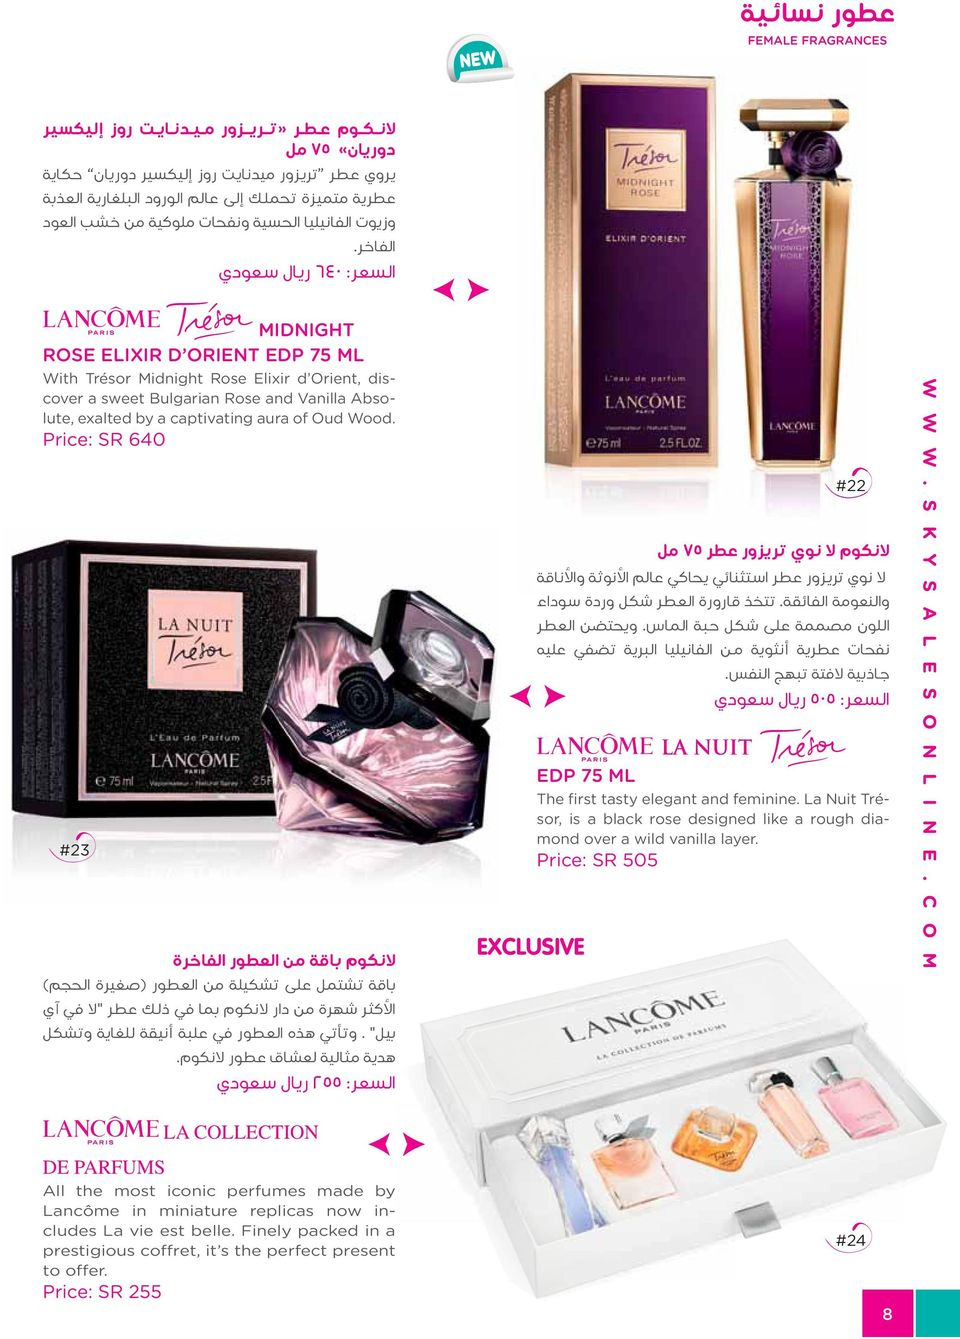 289917262 السعر: ٦٤٠ ريال سعودي MIDNIGHT ROSE ELIXIR D ORIENT EDP 75 ML With Trésor  Midnight